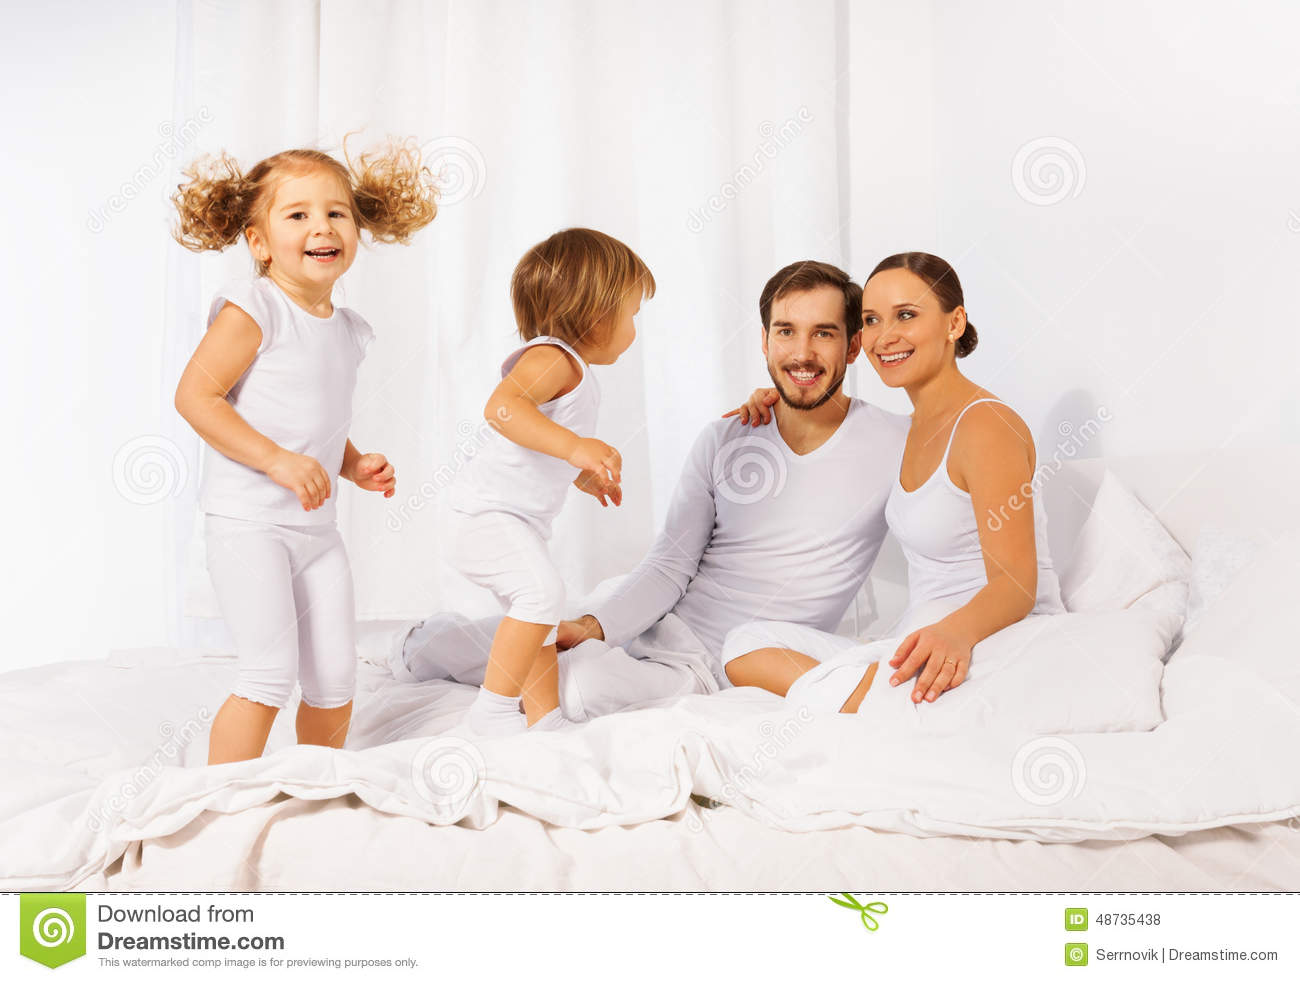 Kids On Bed Father Mother And Their Cute Kids On White Bed Stock Photo .